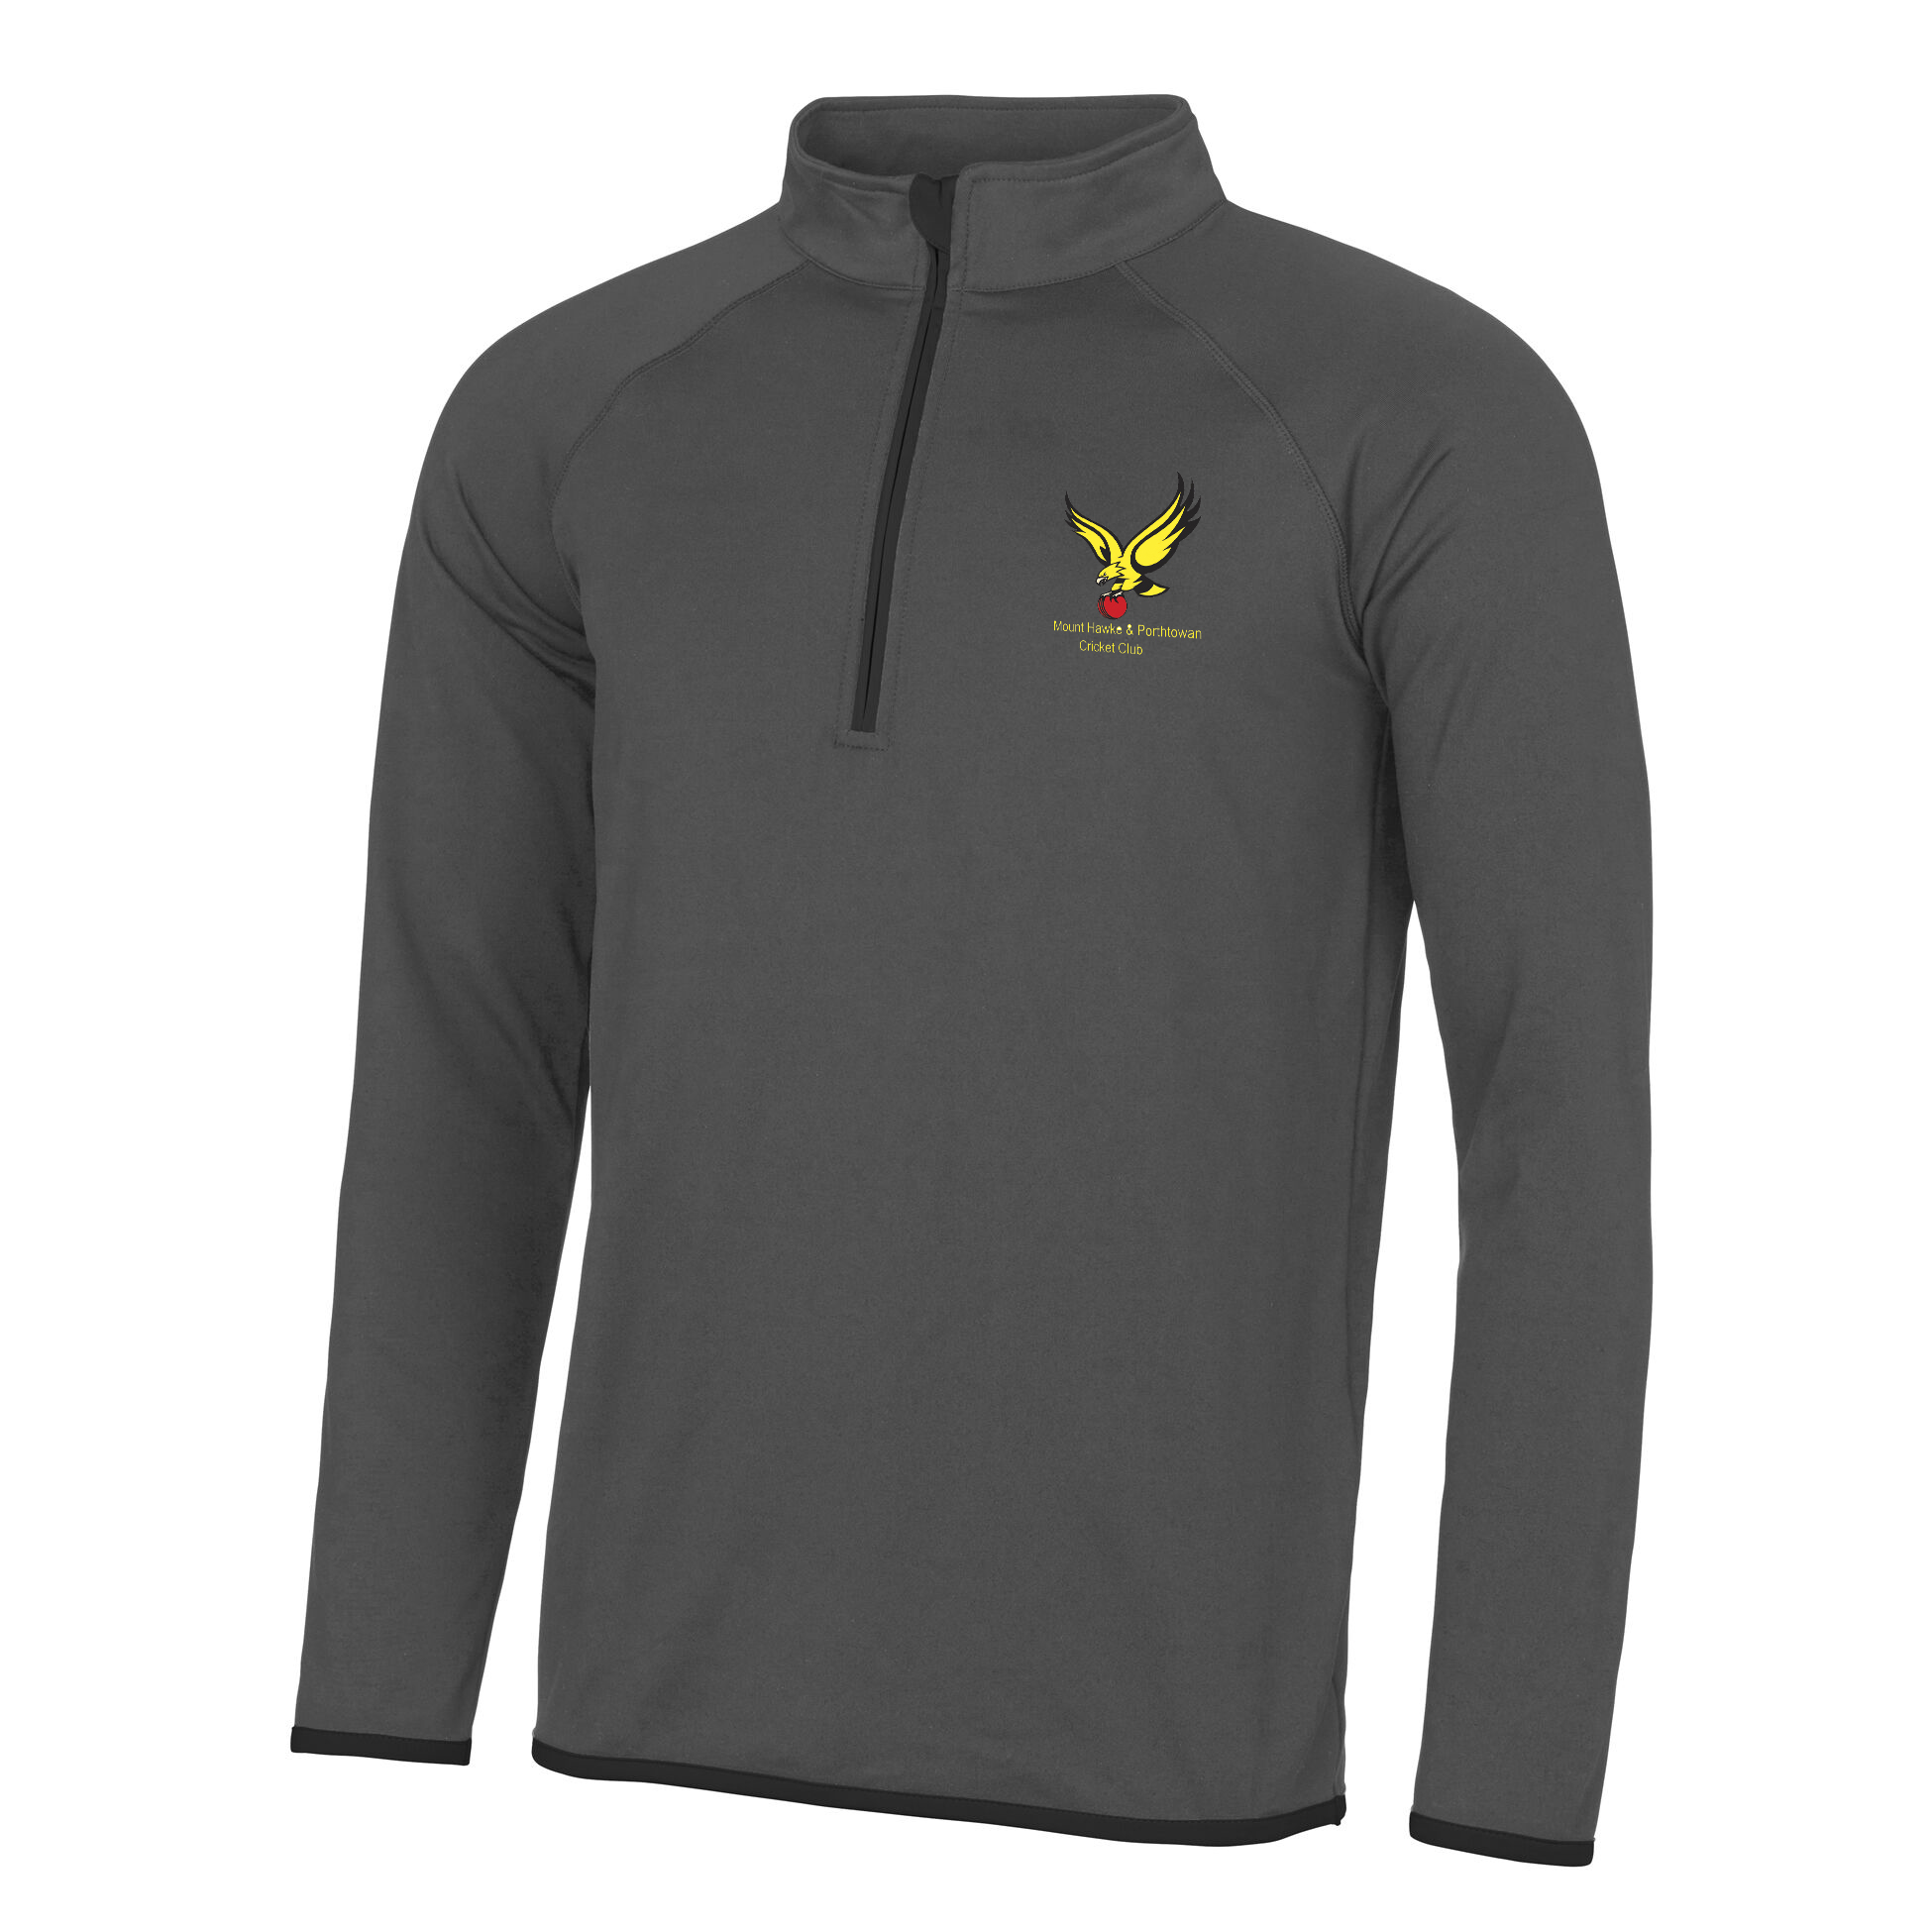 Porthtowan Match Day 1/4 Zip